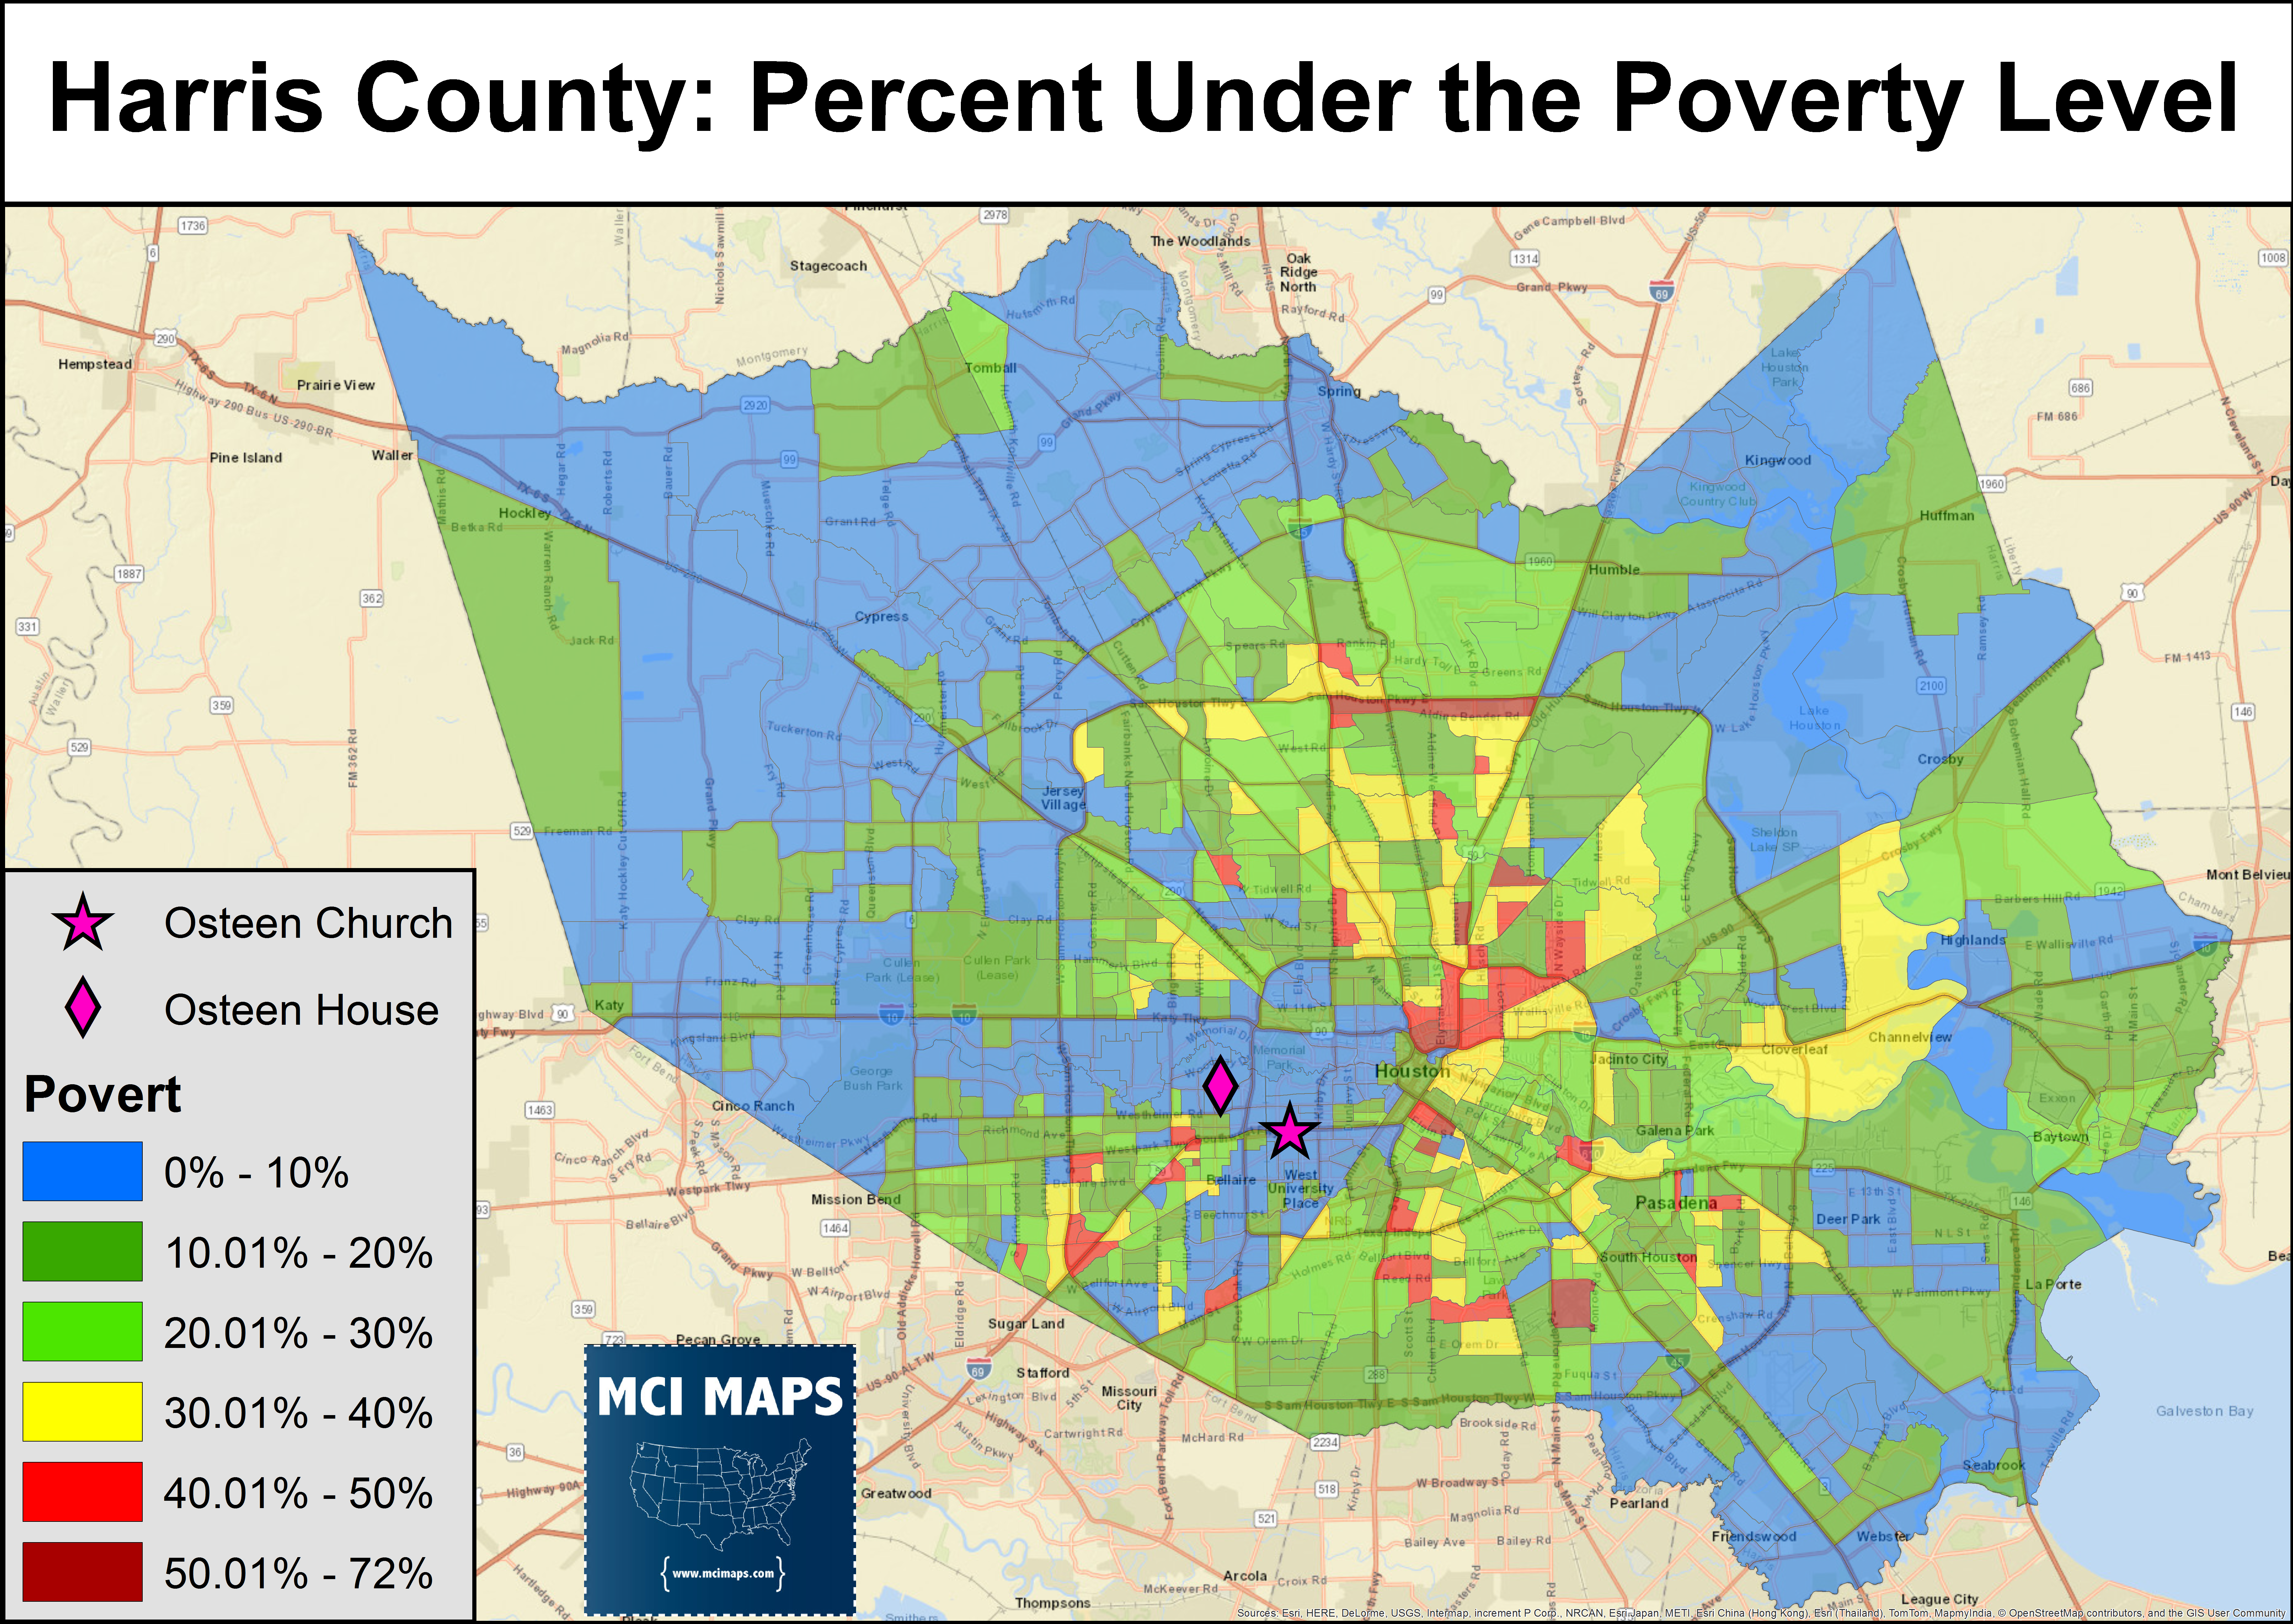 despite being modestly close to downtown houston osteens house and church are located away from the lower income higher poverty areas of the county